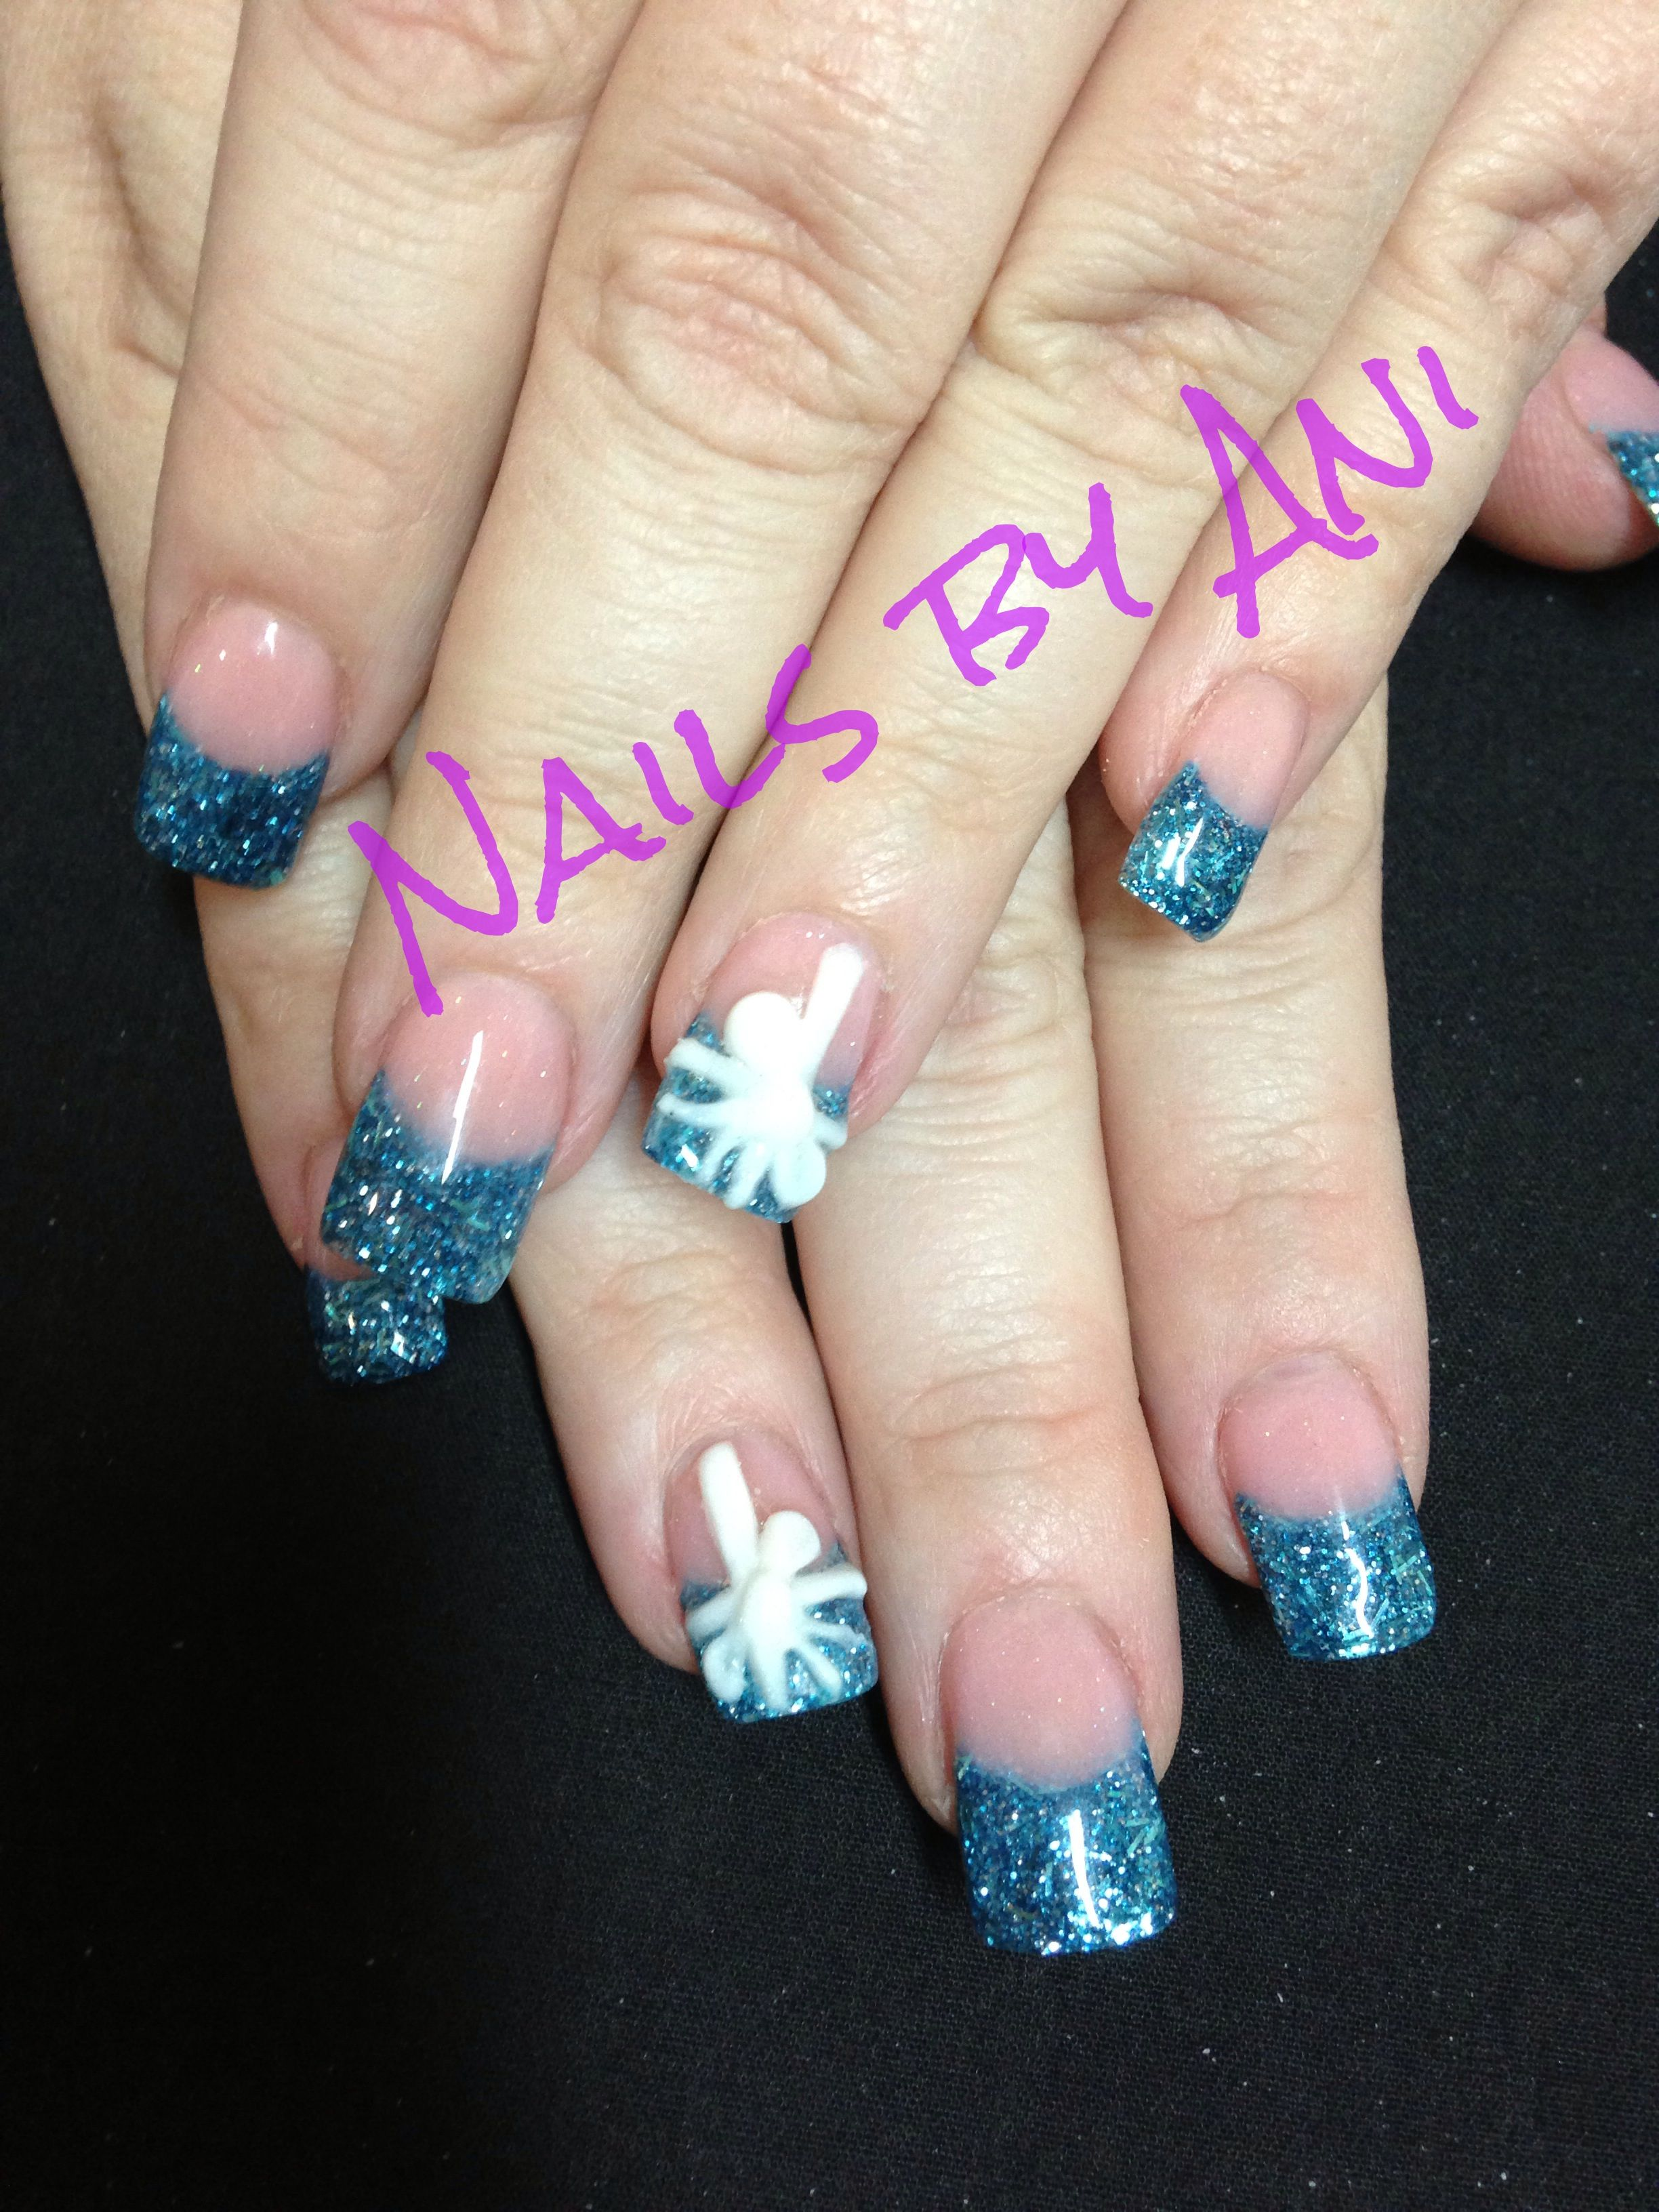 3d blue gift wrapped nails   Acrylic nail designs   Pinterest ...